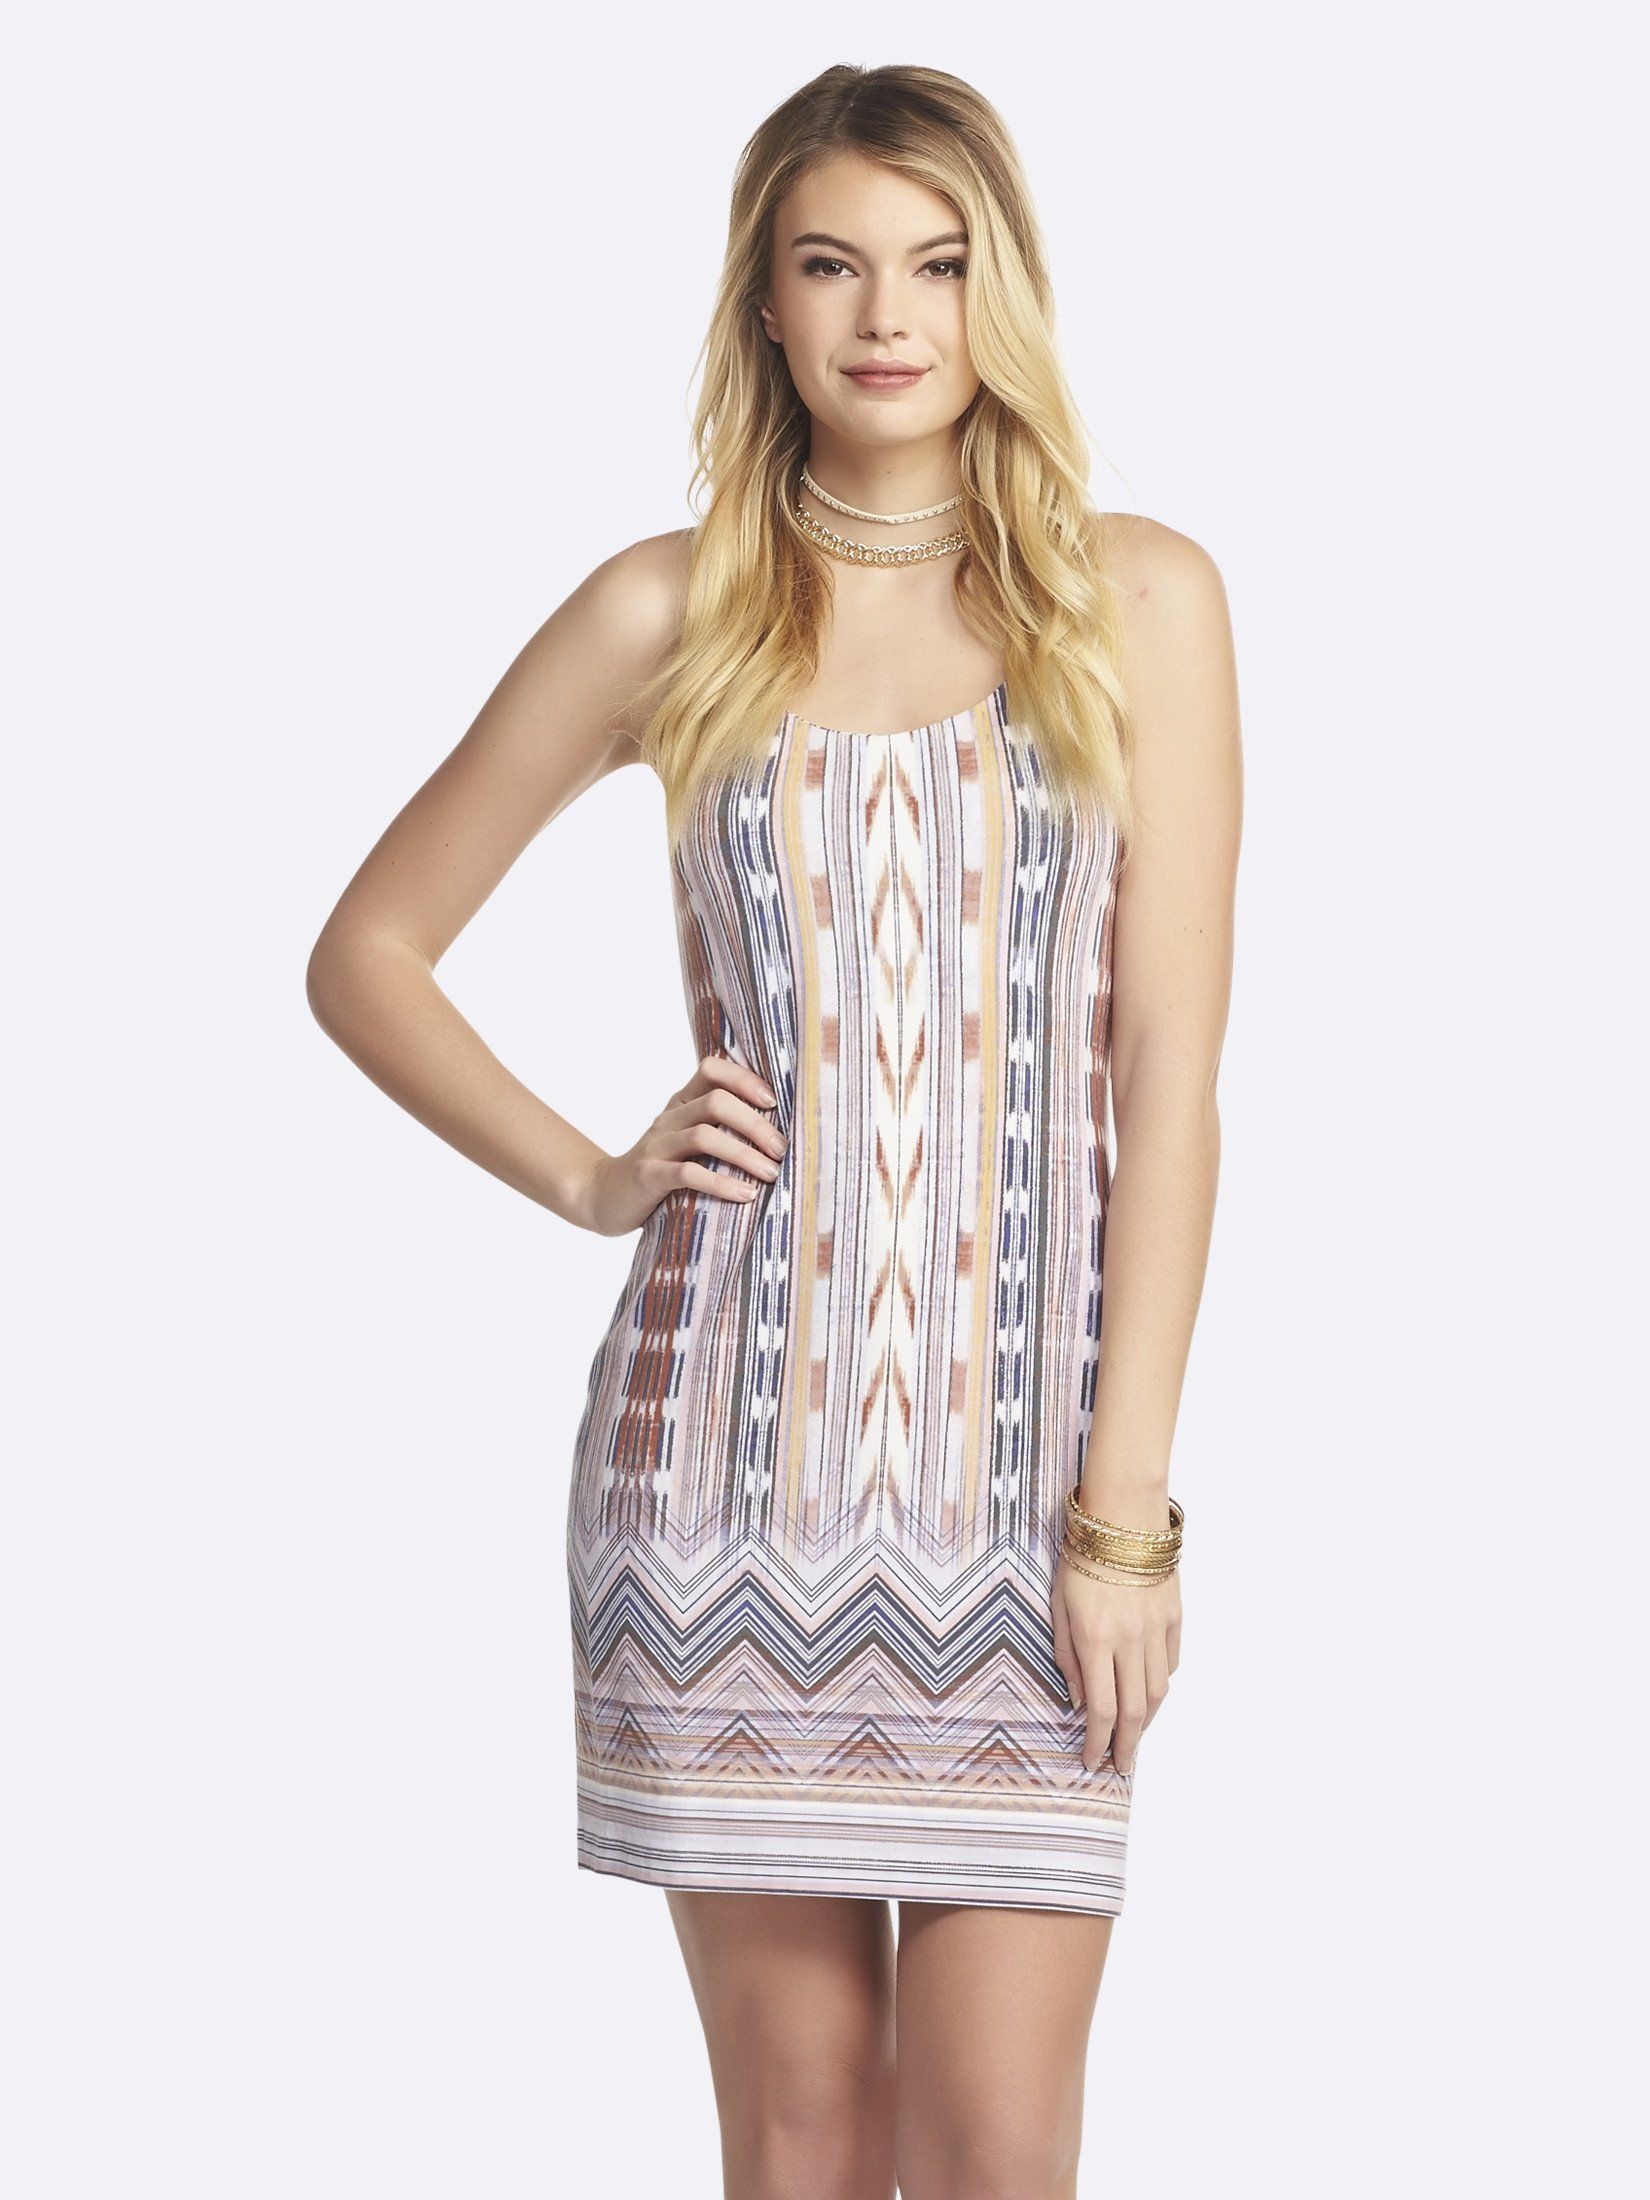 Meret dress products pinterest products